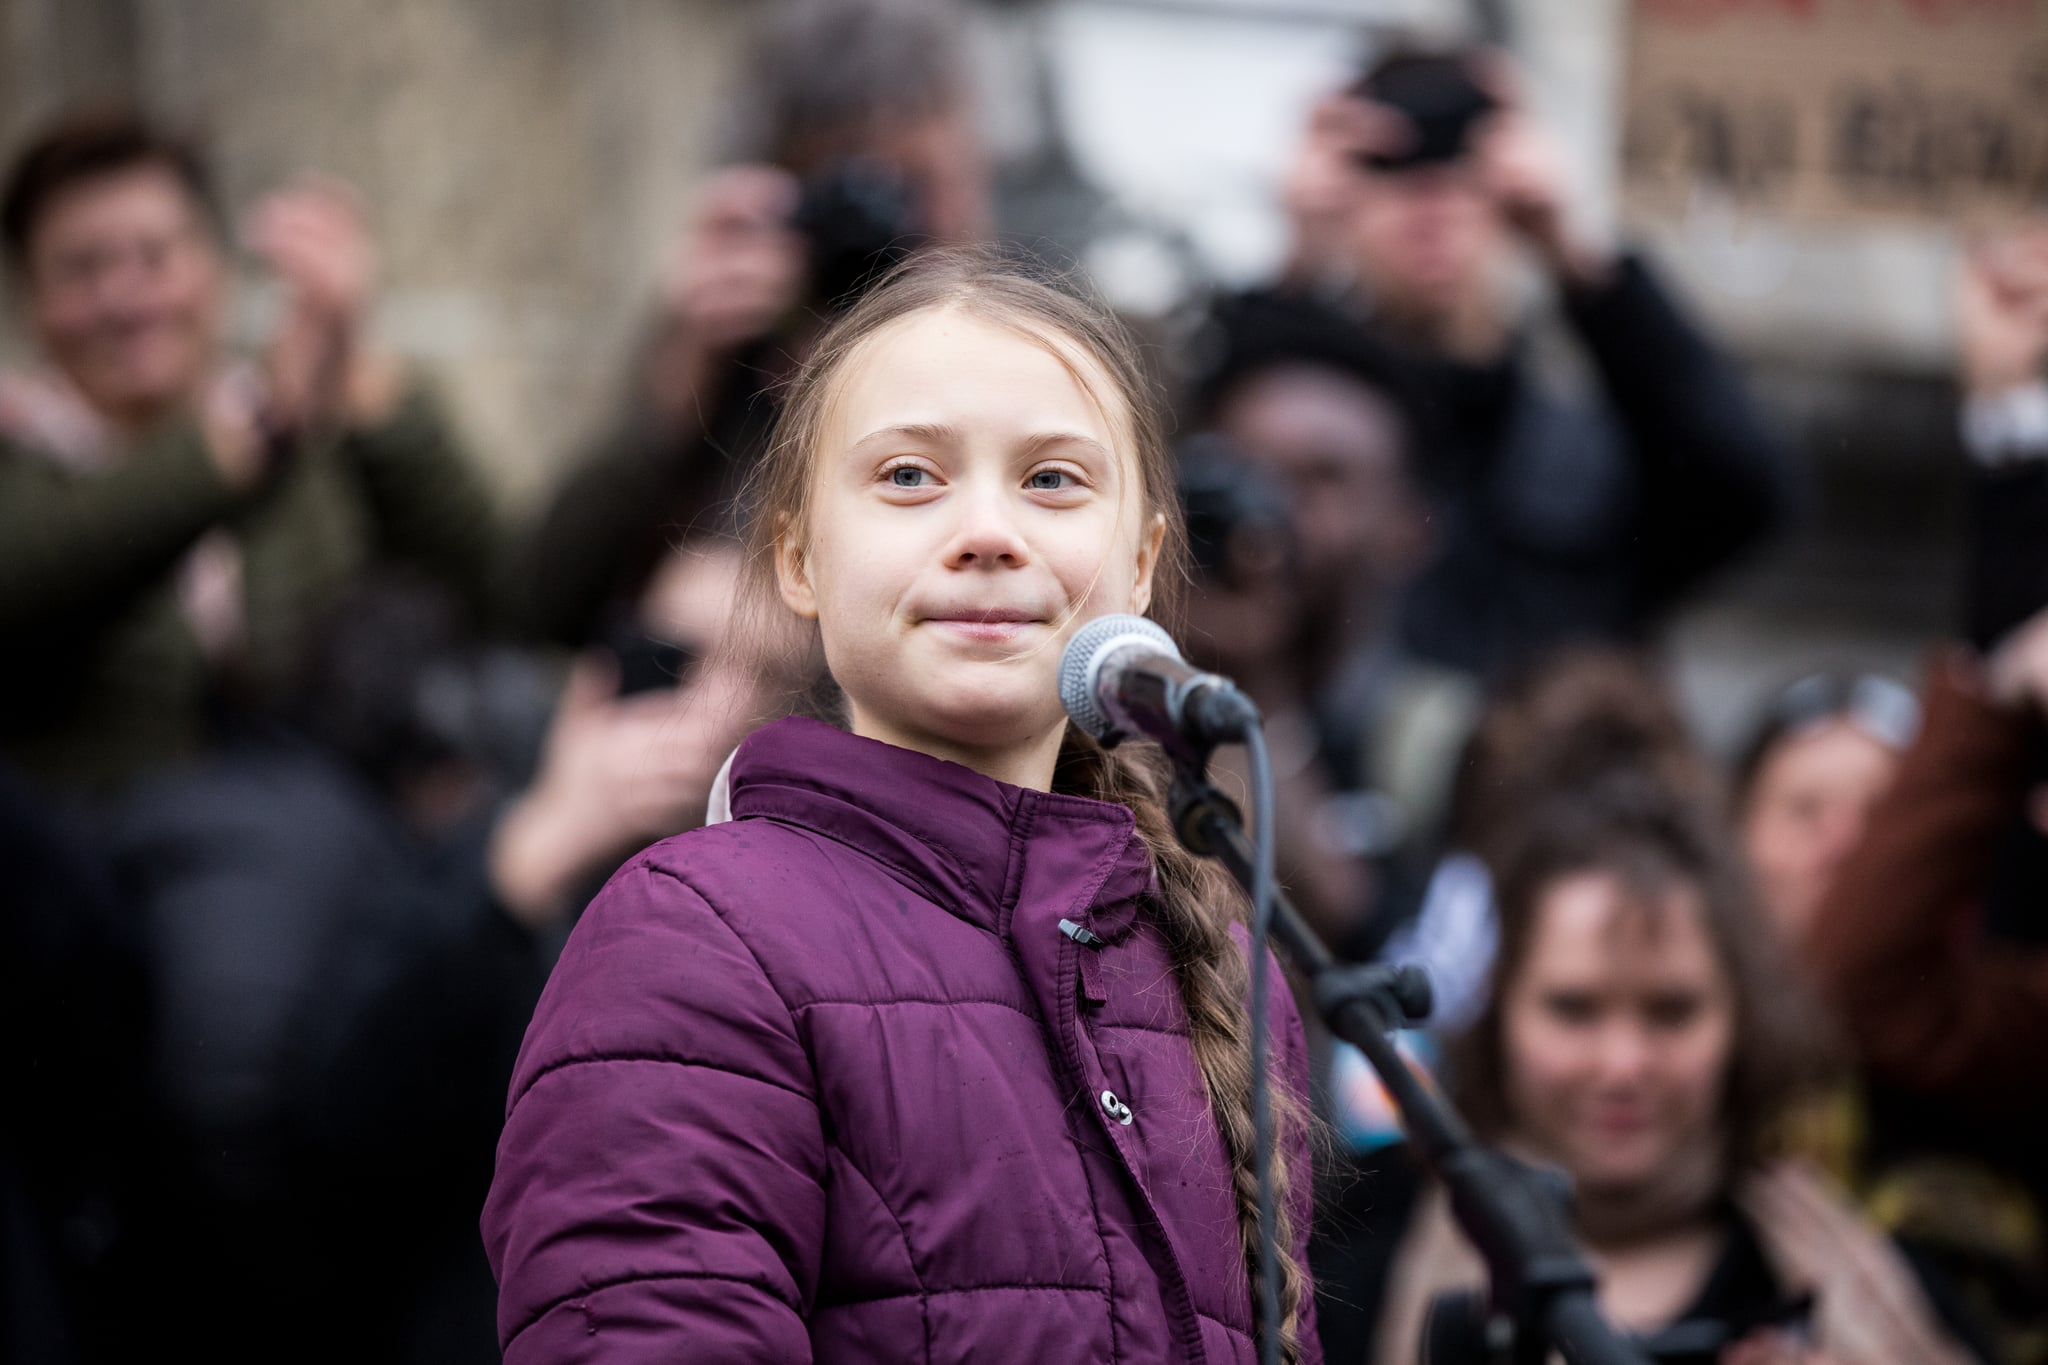 LAUSANNE, SWITZERLAND - JANUARY 17: Swedish climate activist Greta Thunberg speaks to participants at a climate change protest on January 17, 2020 in Lausanne, Switzerland. The protest is taking place ahead of the upcoming annual gathering of world leaders at the Davos World Economic Forum. (Photo by Ronald Patrick/Getty Images)